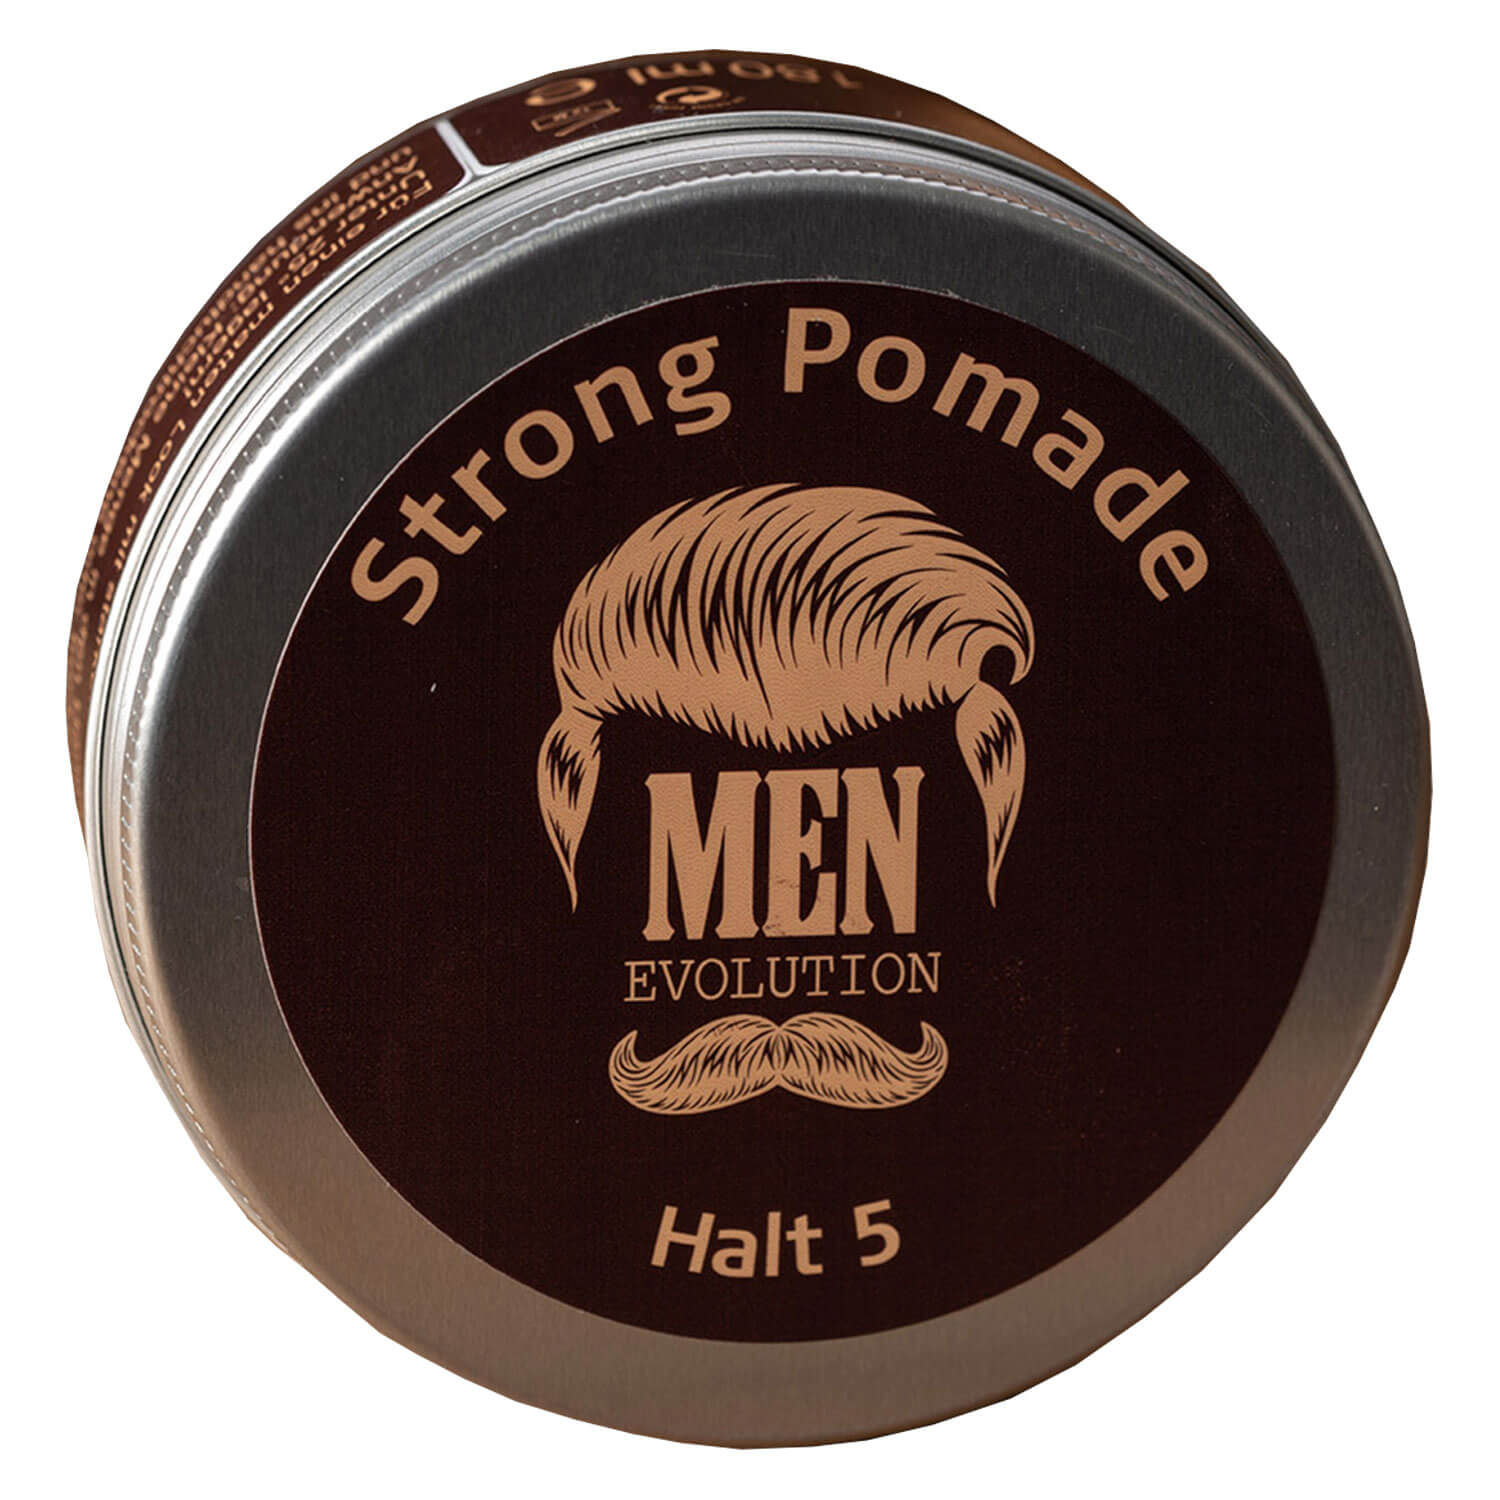 MEN Evolution - Strong Pomade